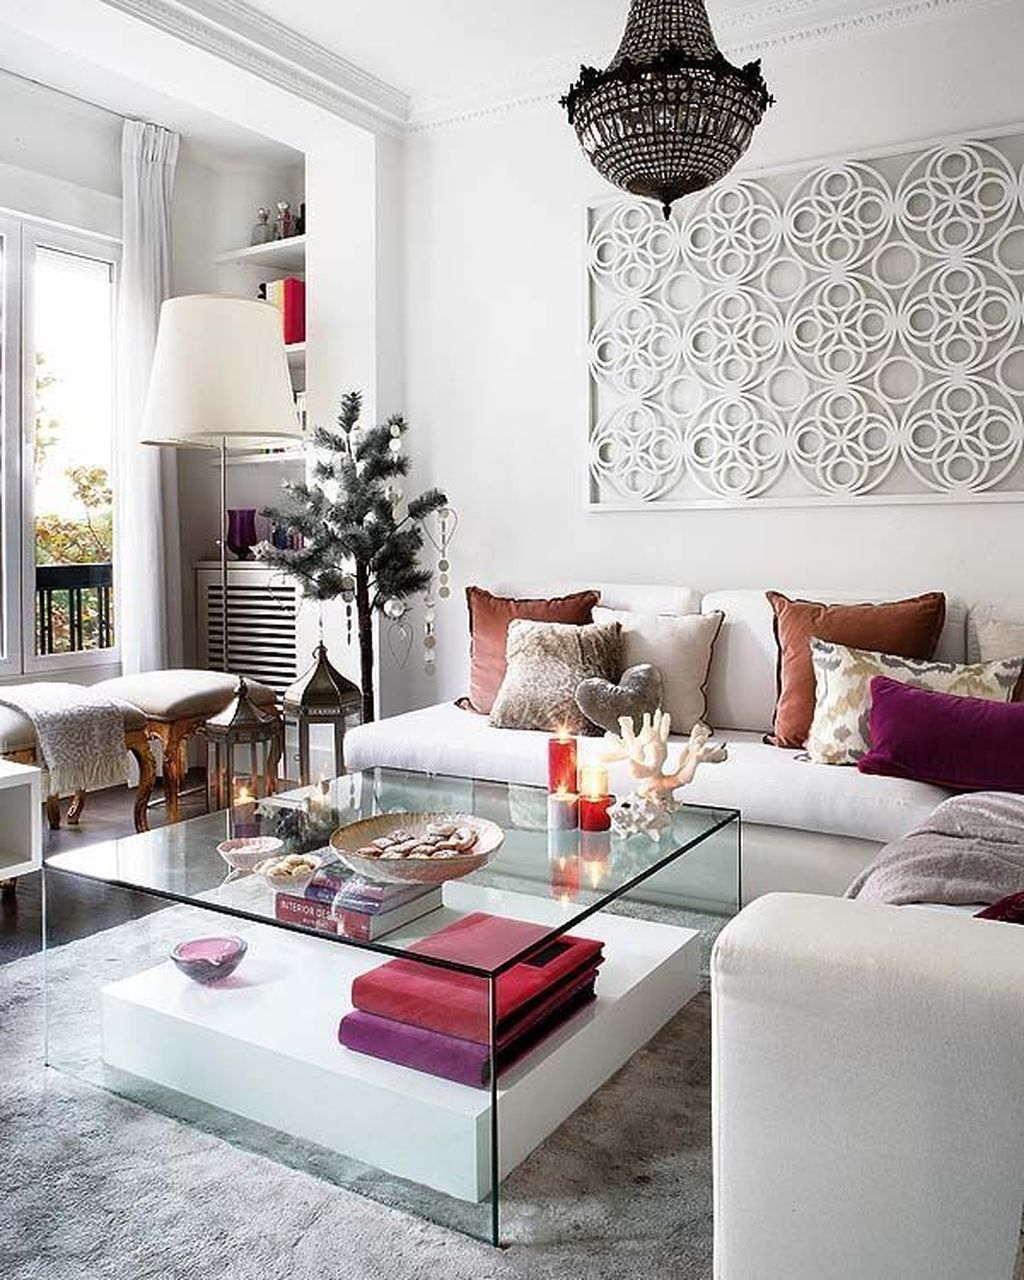 Pin by Decor For Home Designs on Living room ideas | Pinterest ...